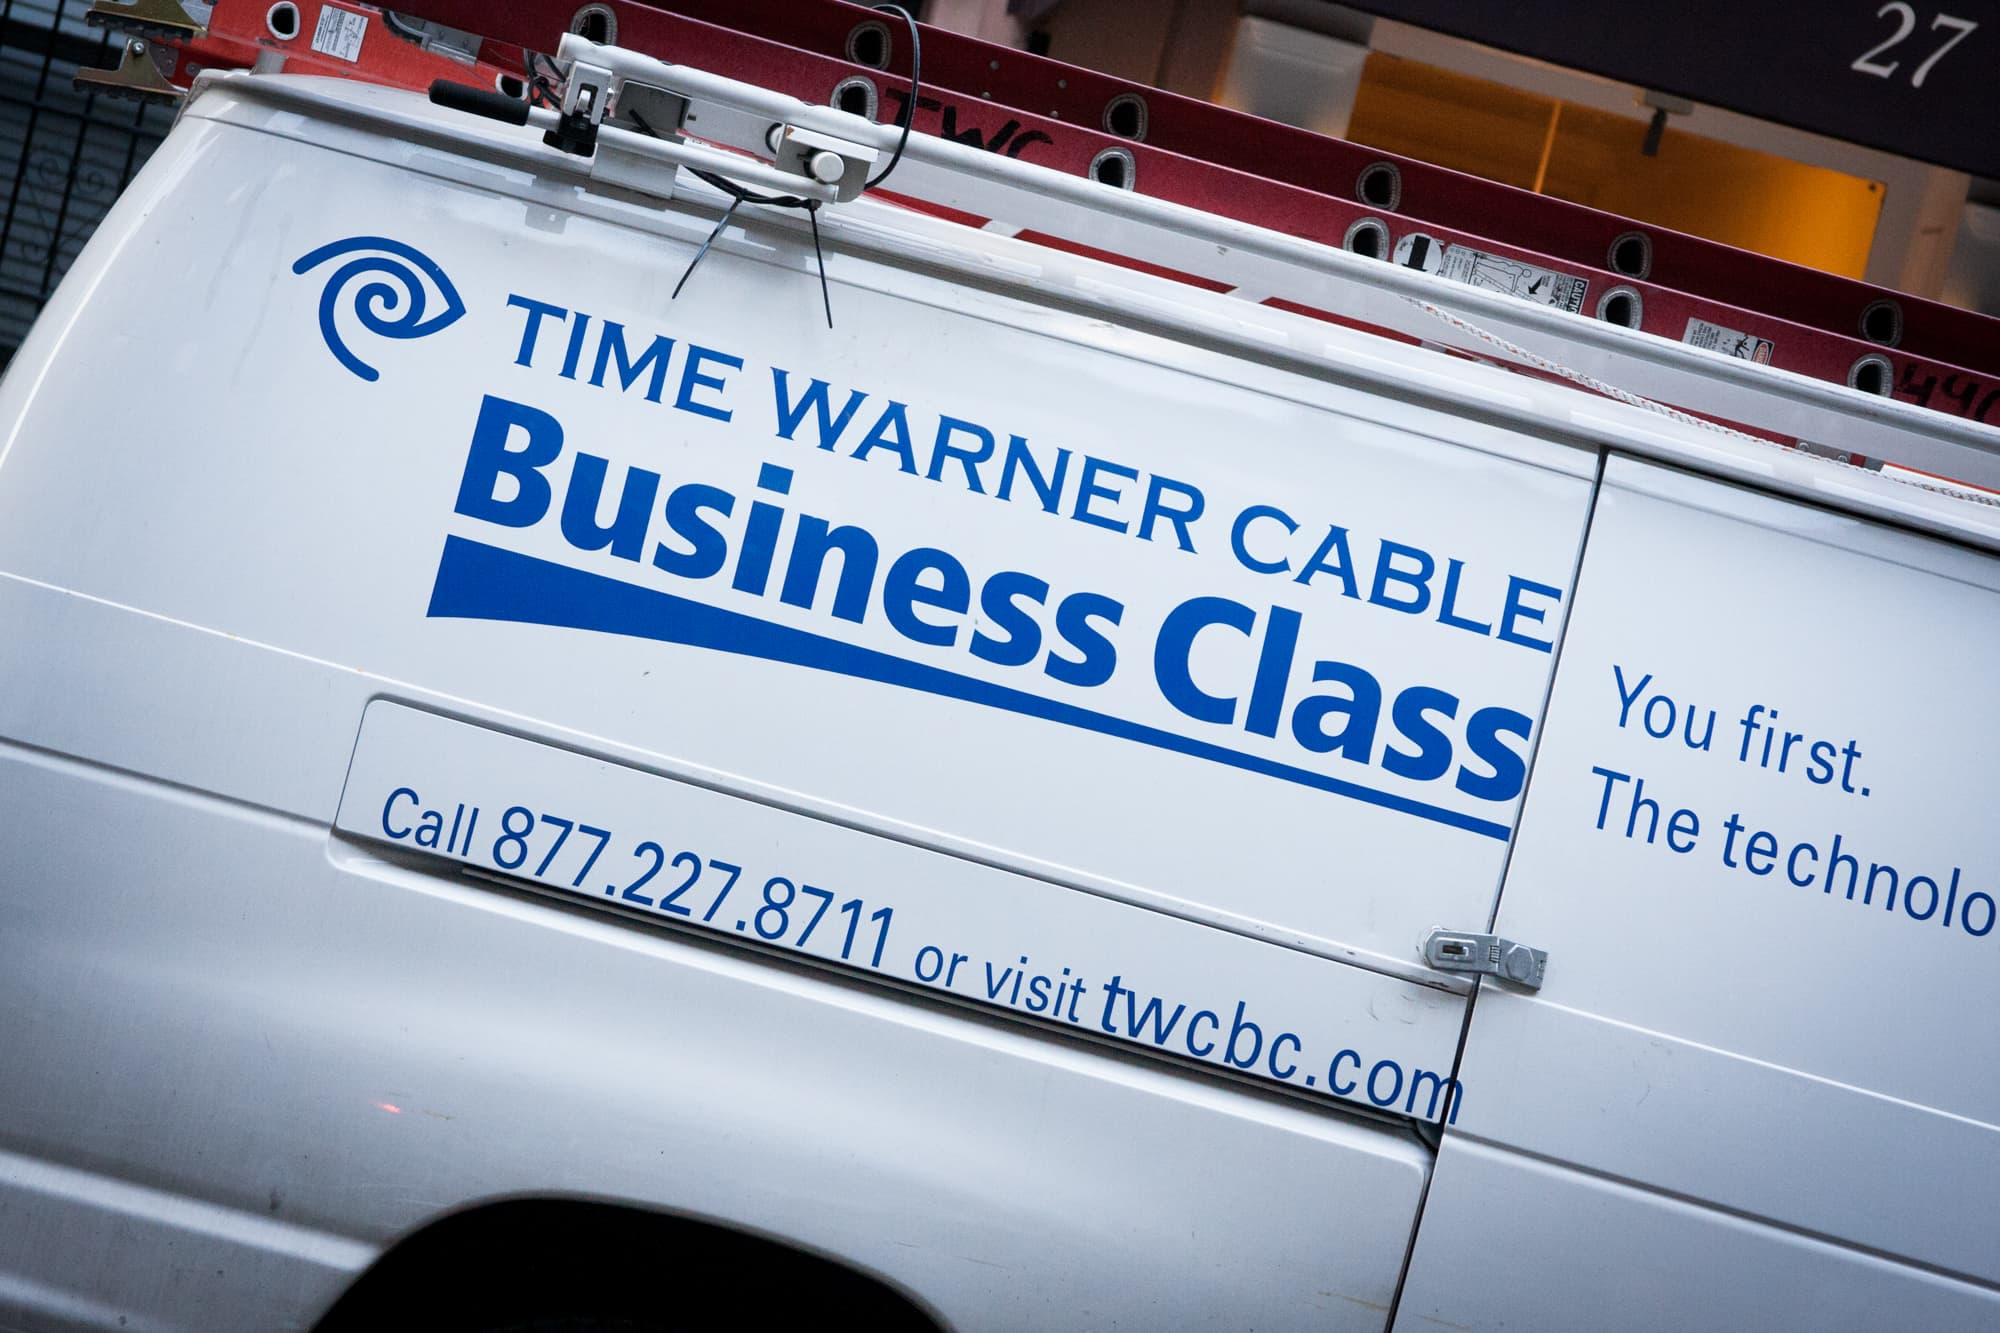 How the Charter-Time Warner deal could affect your cable bill